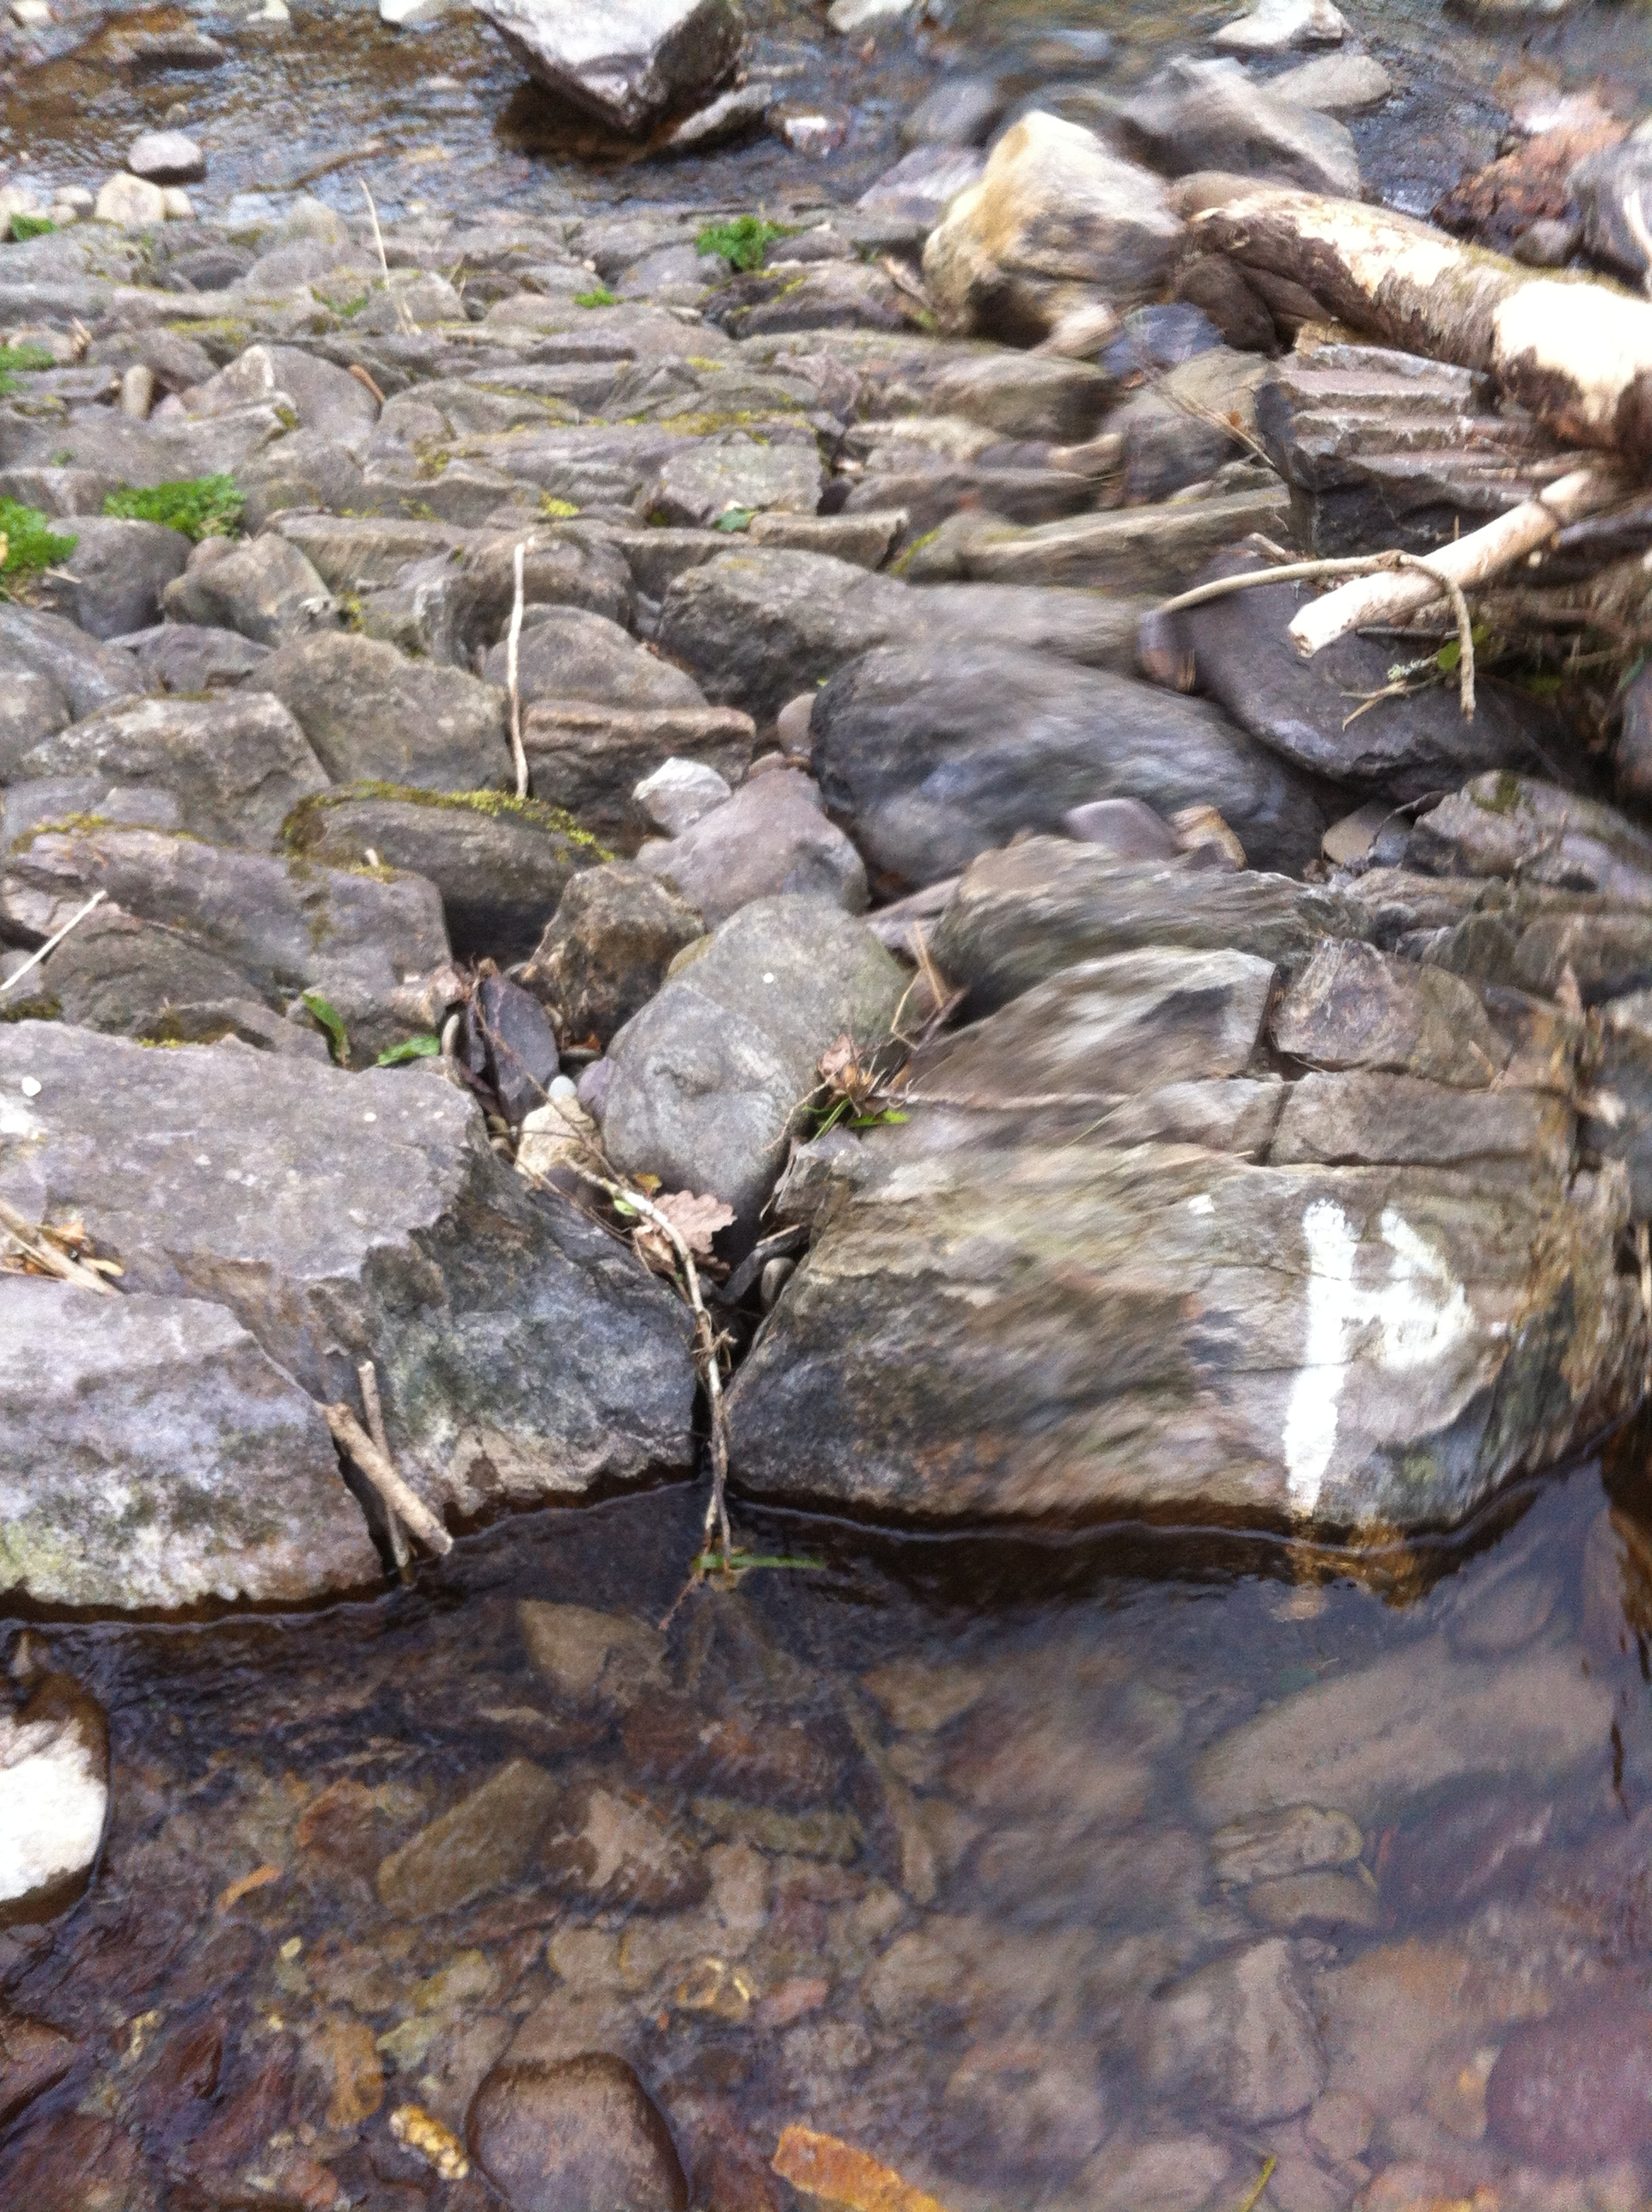 Original weir stones still visible in the structure (2)